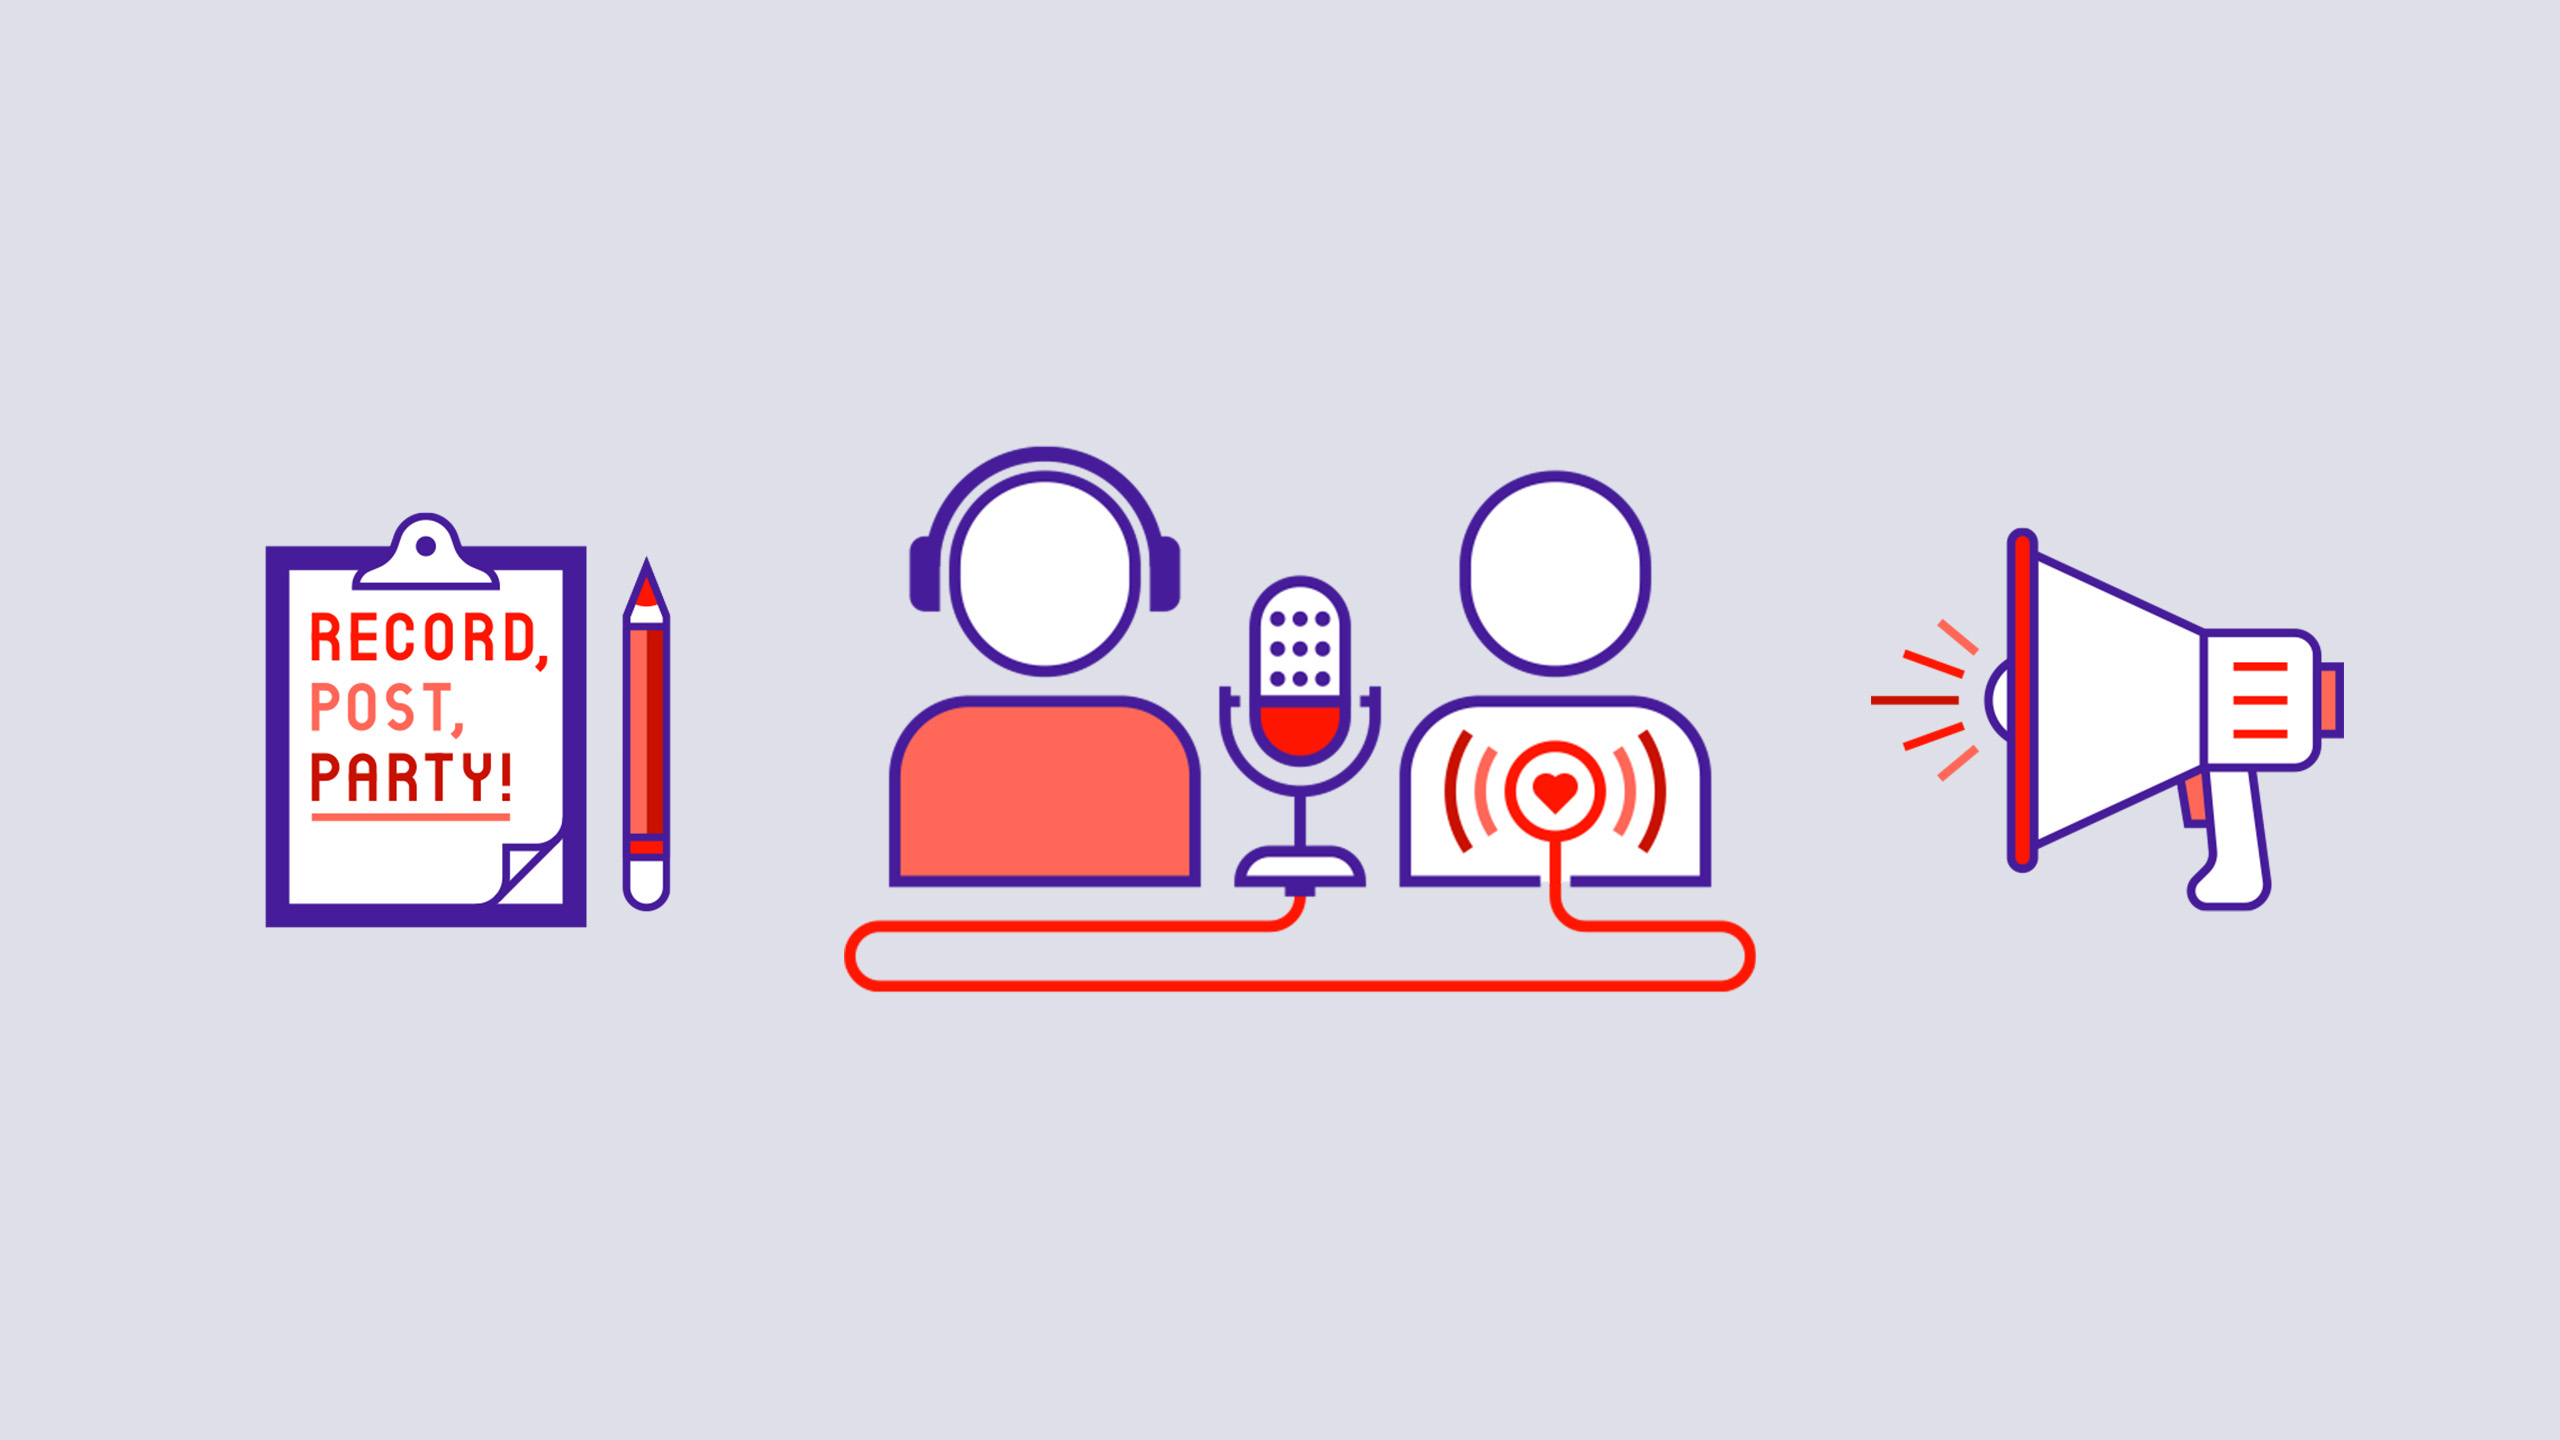 apple s podcast marketing best practices offer tips and insights for creating great shows